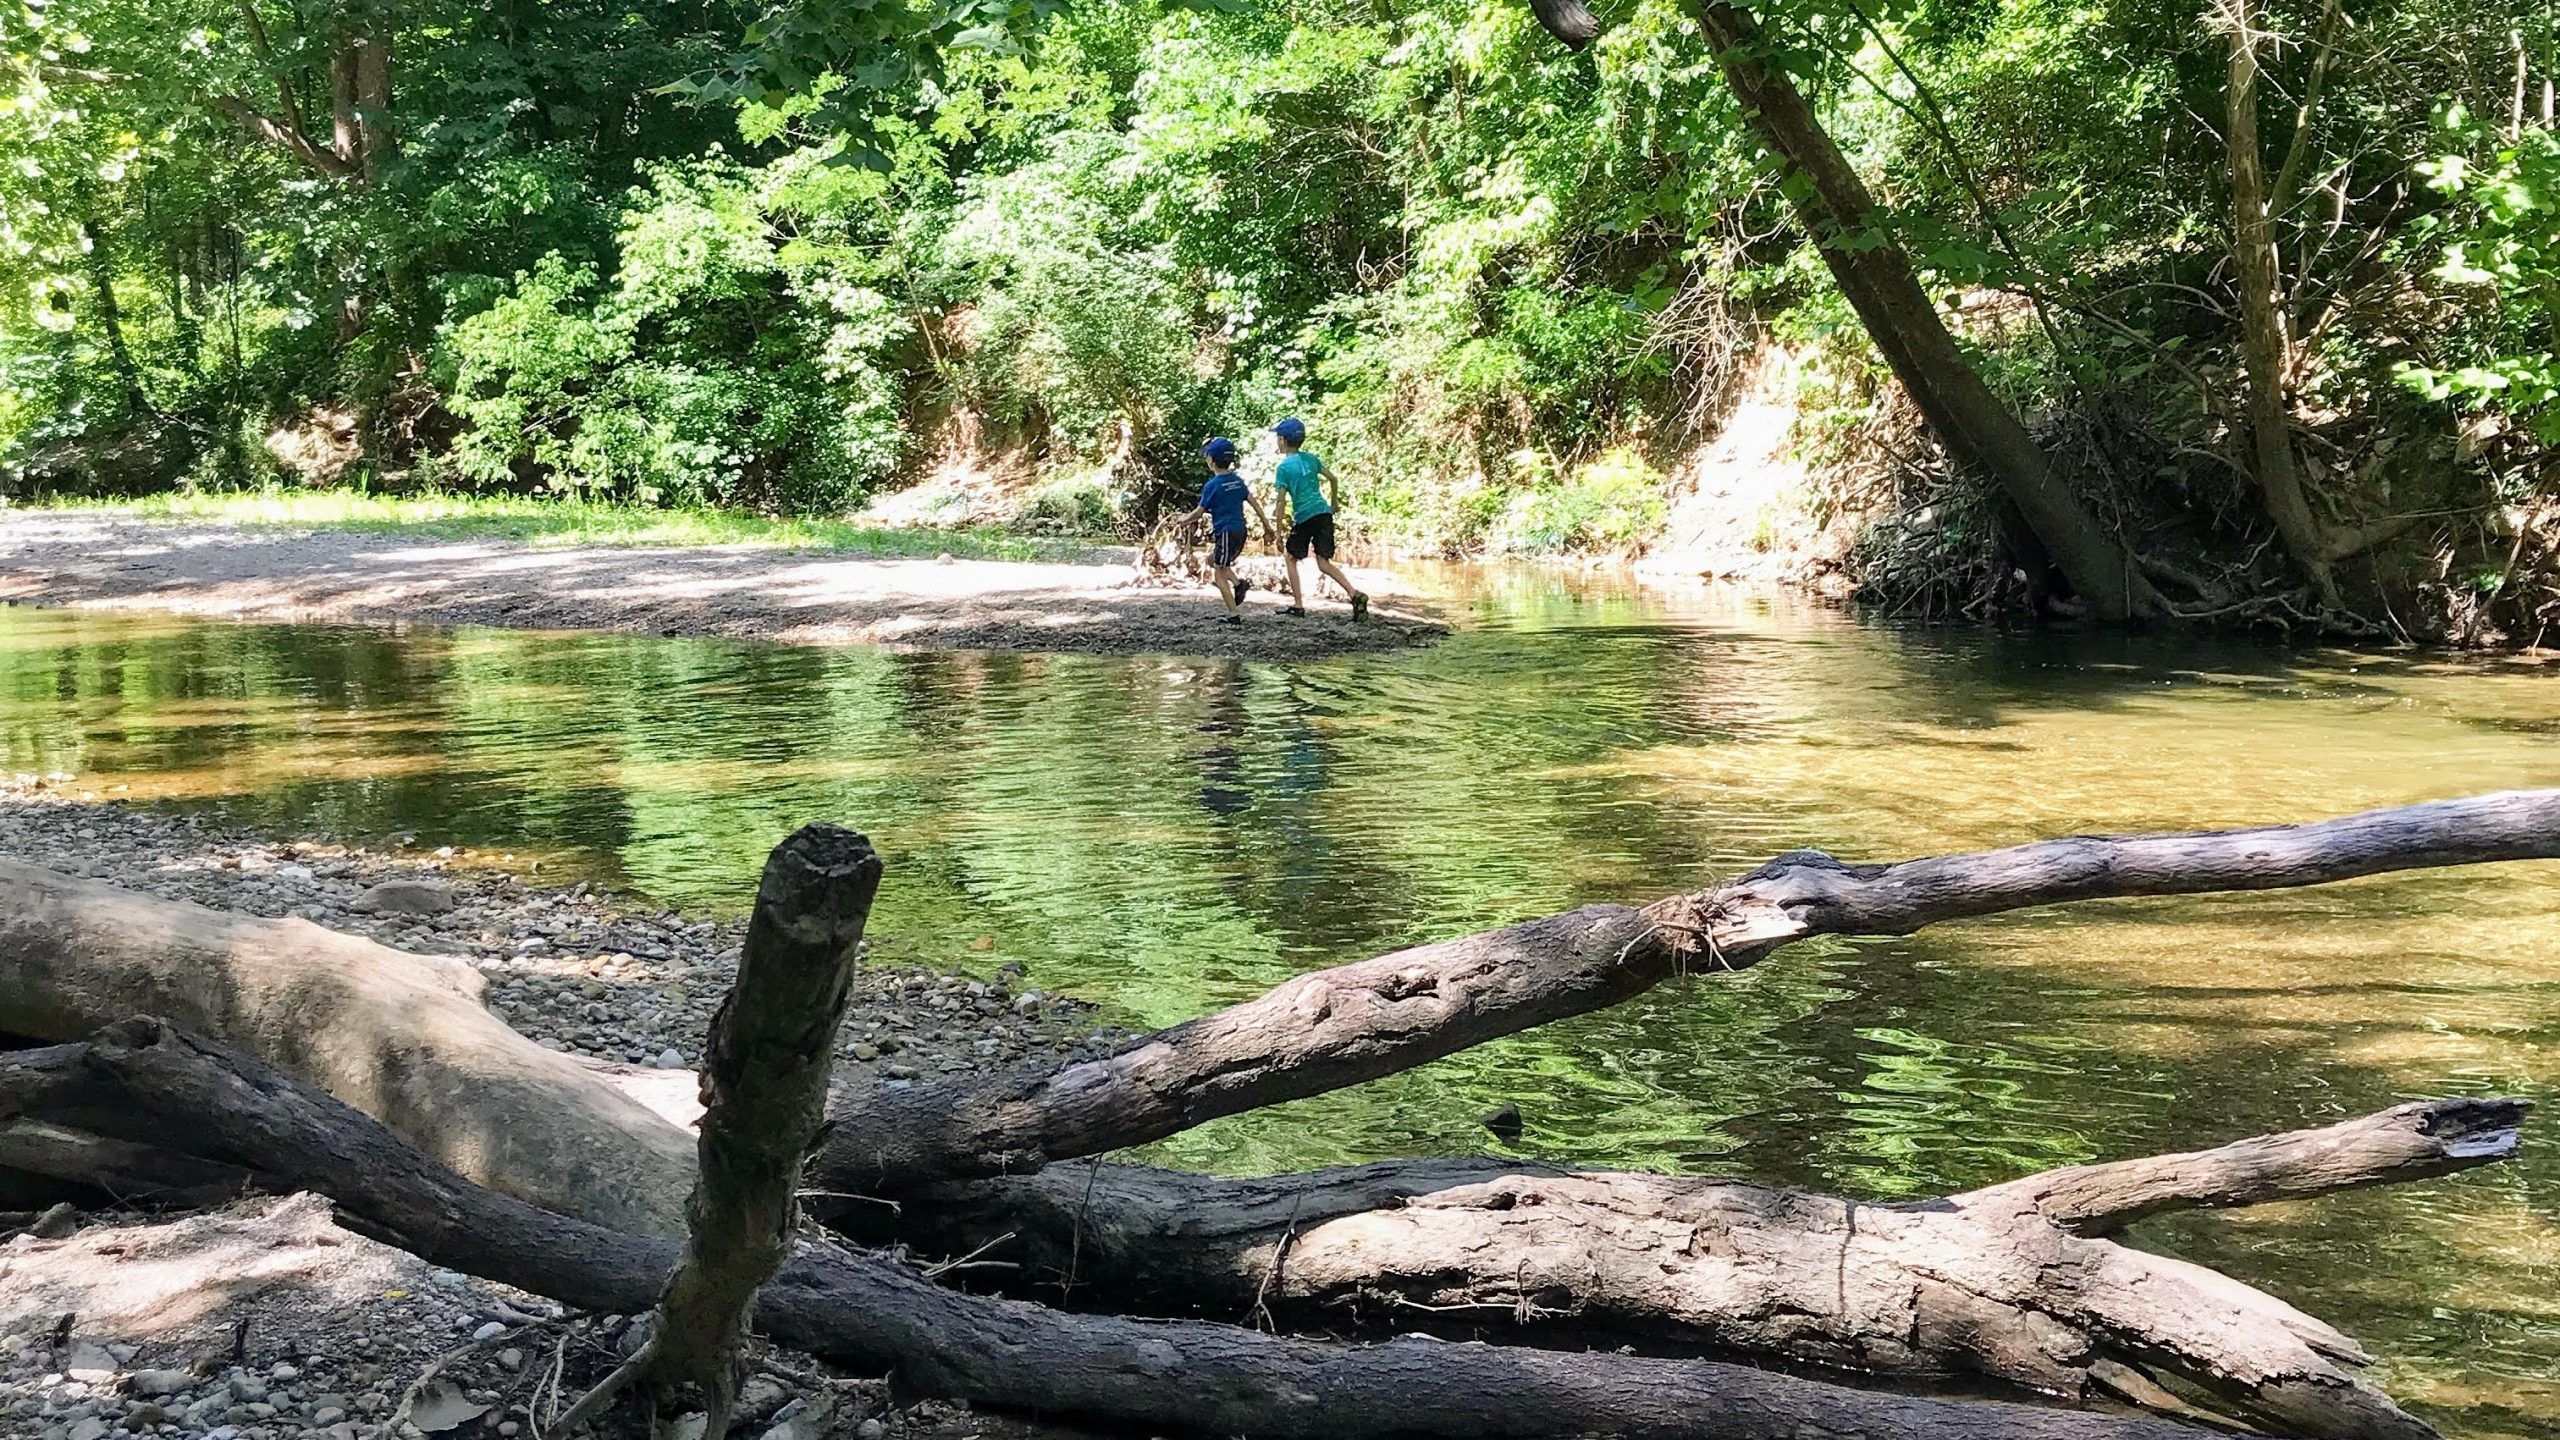 Best Hikes for Families in Indianapolis - Marott Park Williams Creek